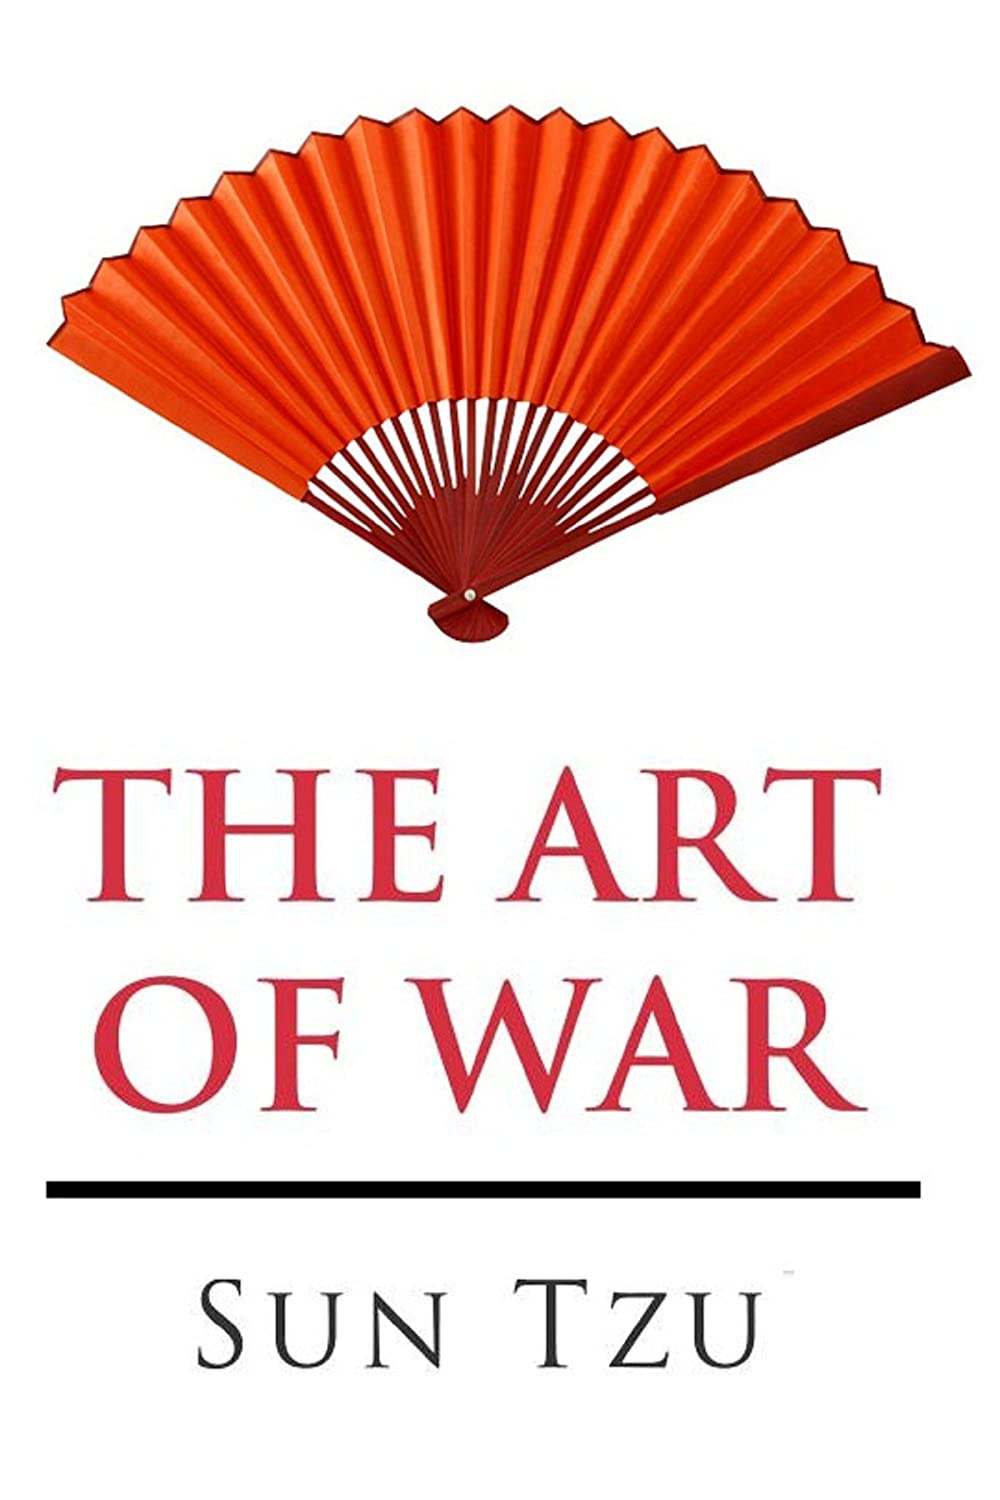 http://www.amazon.com/Art-War-Sun-Tzu-ebook/dp/B00C1T79DE/ref=sr_1_42?s=digital-text&ie=UTF8&qid=1416246826&sr=1-42&keywords=free+kindle+books